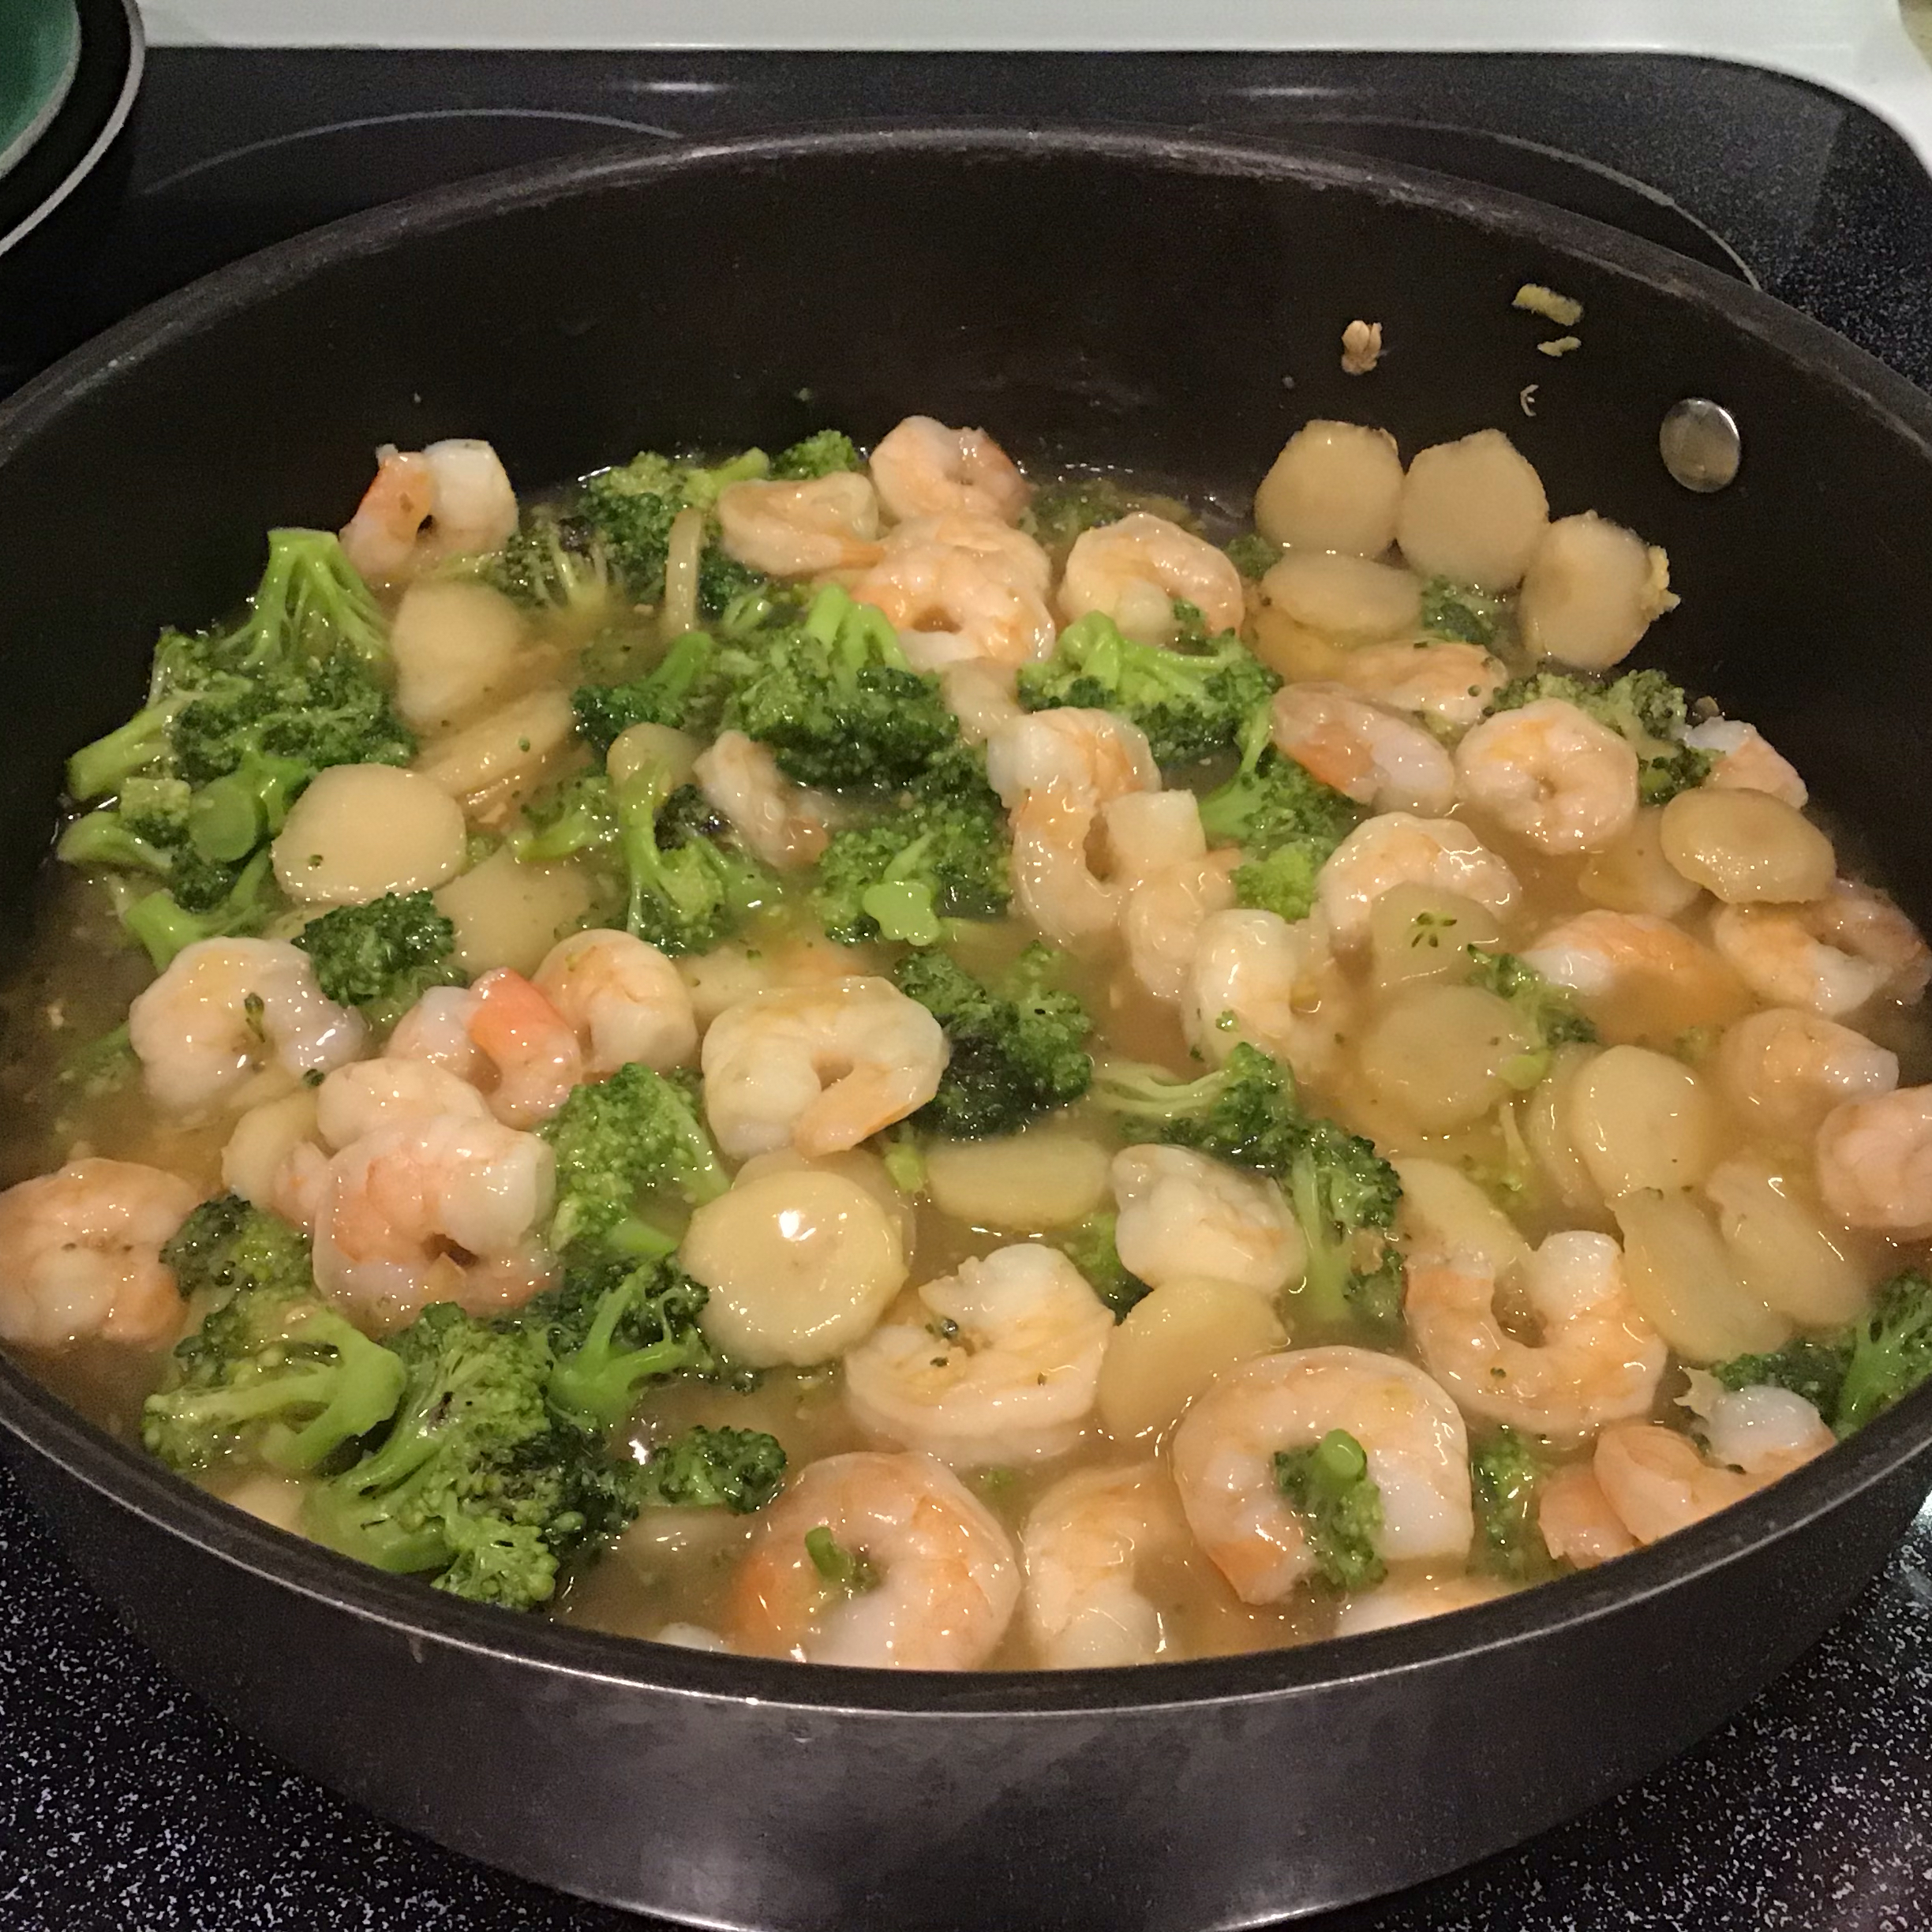 Shrimp with Broccoli in Garlic Sauce Phyllis